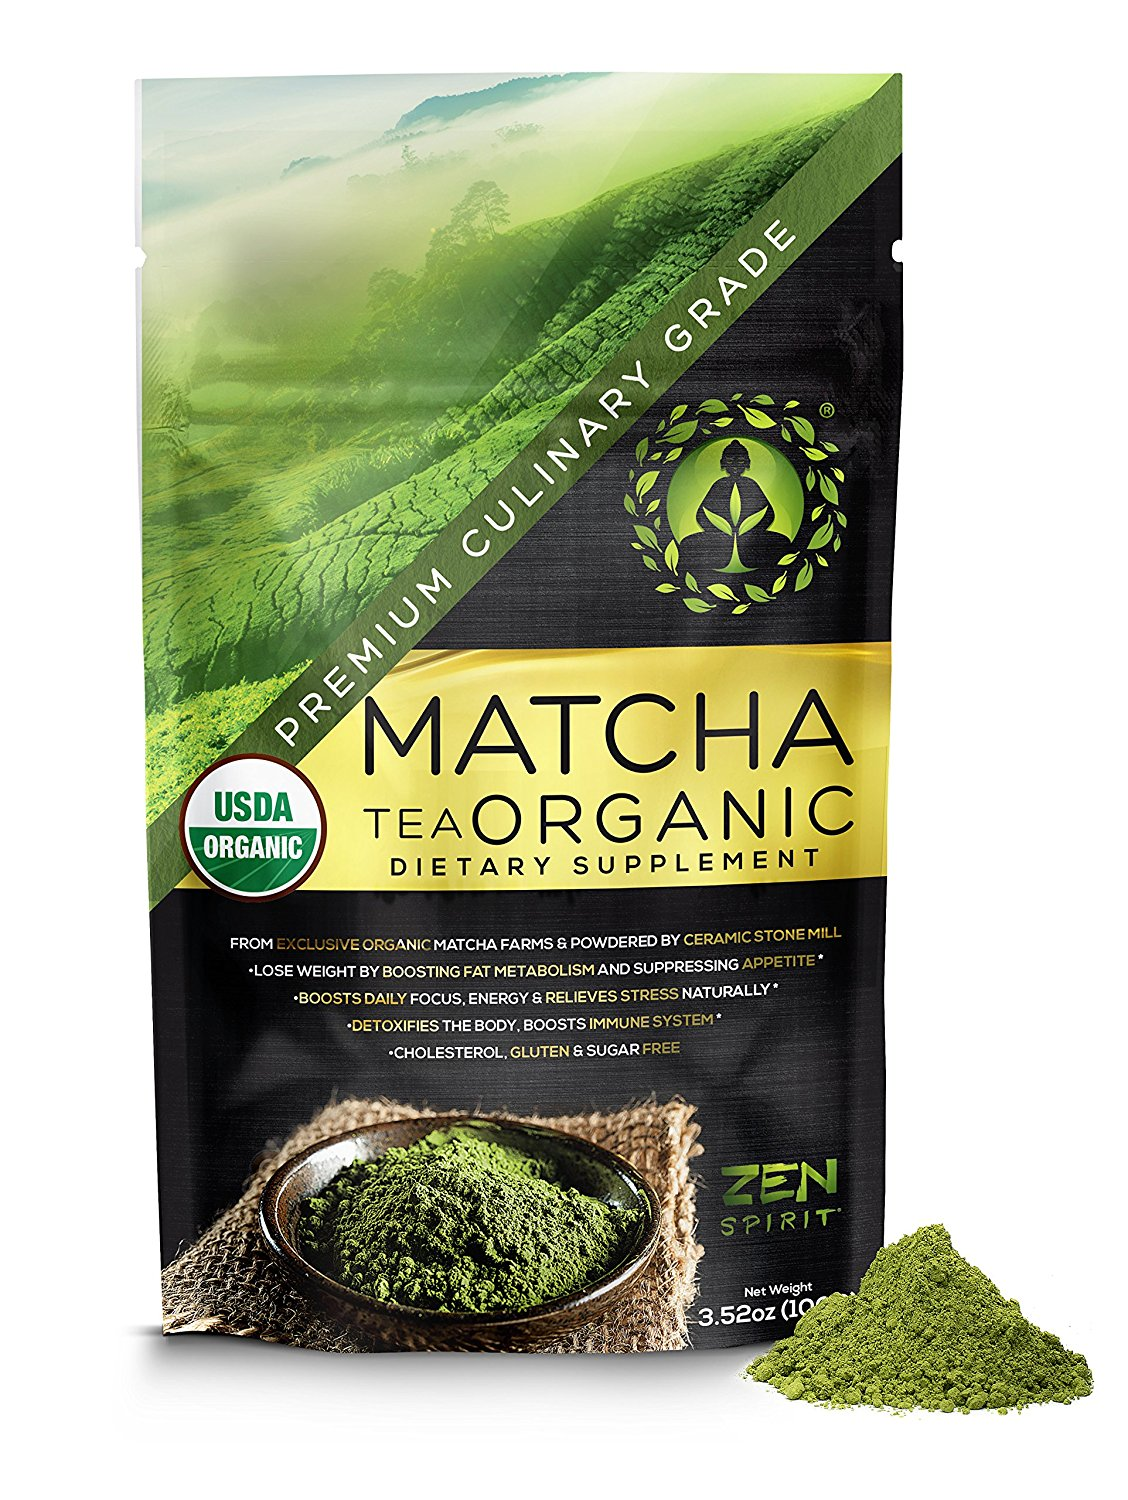 Matcha Green Tea Powder Organic ( Japanese Premium Culinary Grade ) - USDA & Vegan Certified - 100g (3.52 oz) - Perfect for Baking